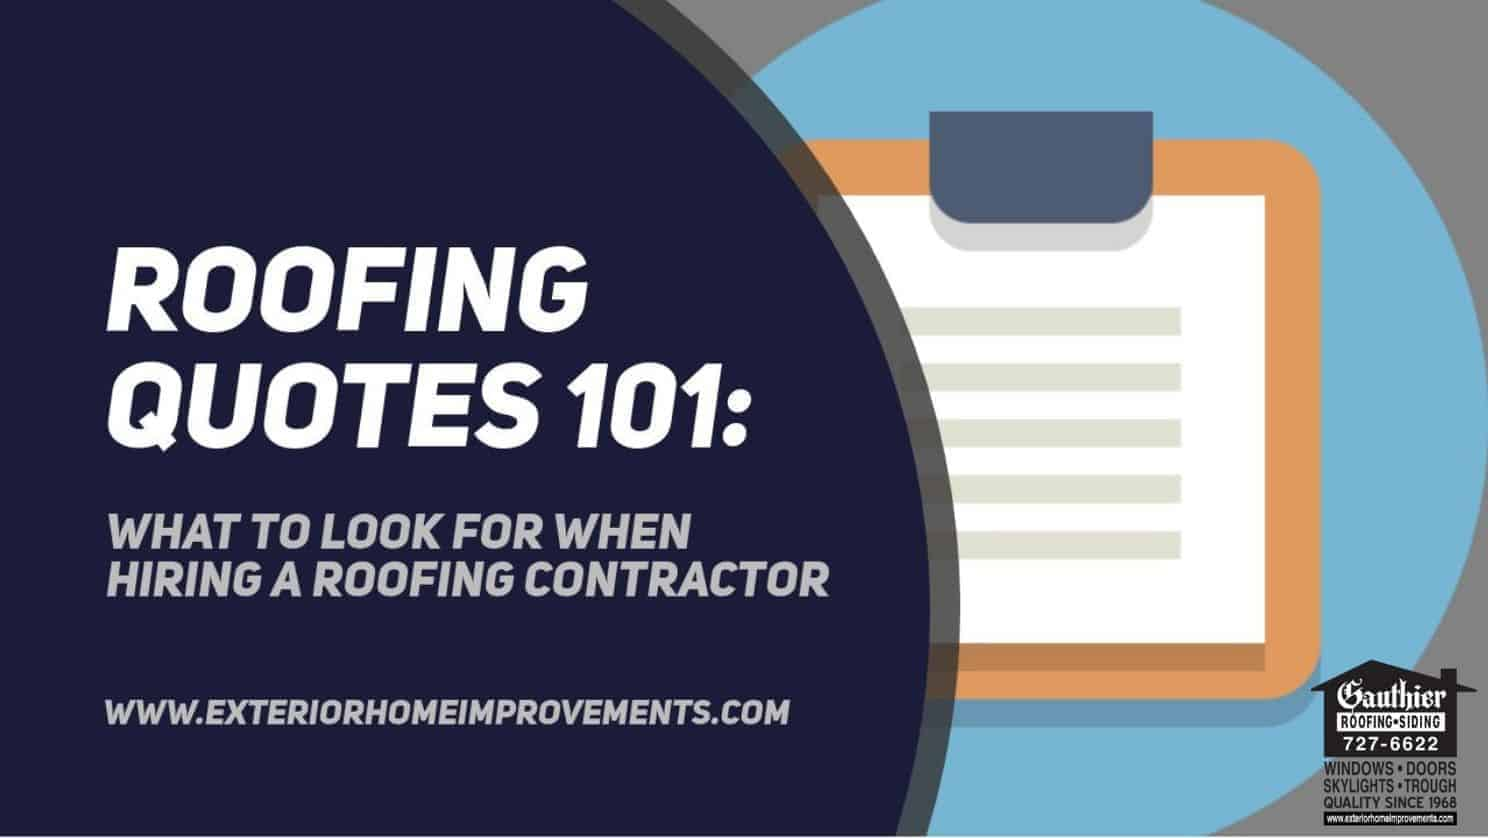 Roofing Quotes 101 – What to Look For When Hiring A Roofing Contractor